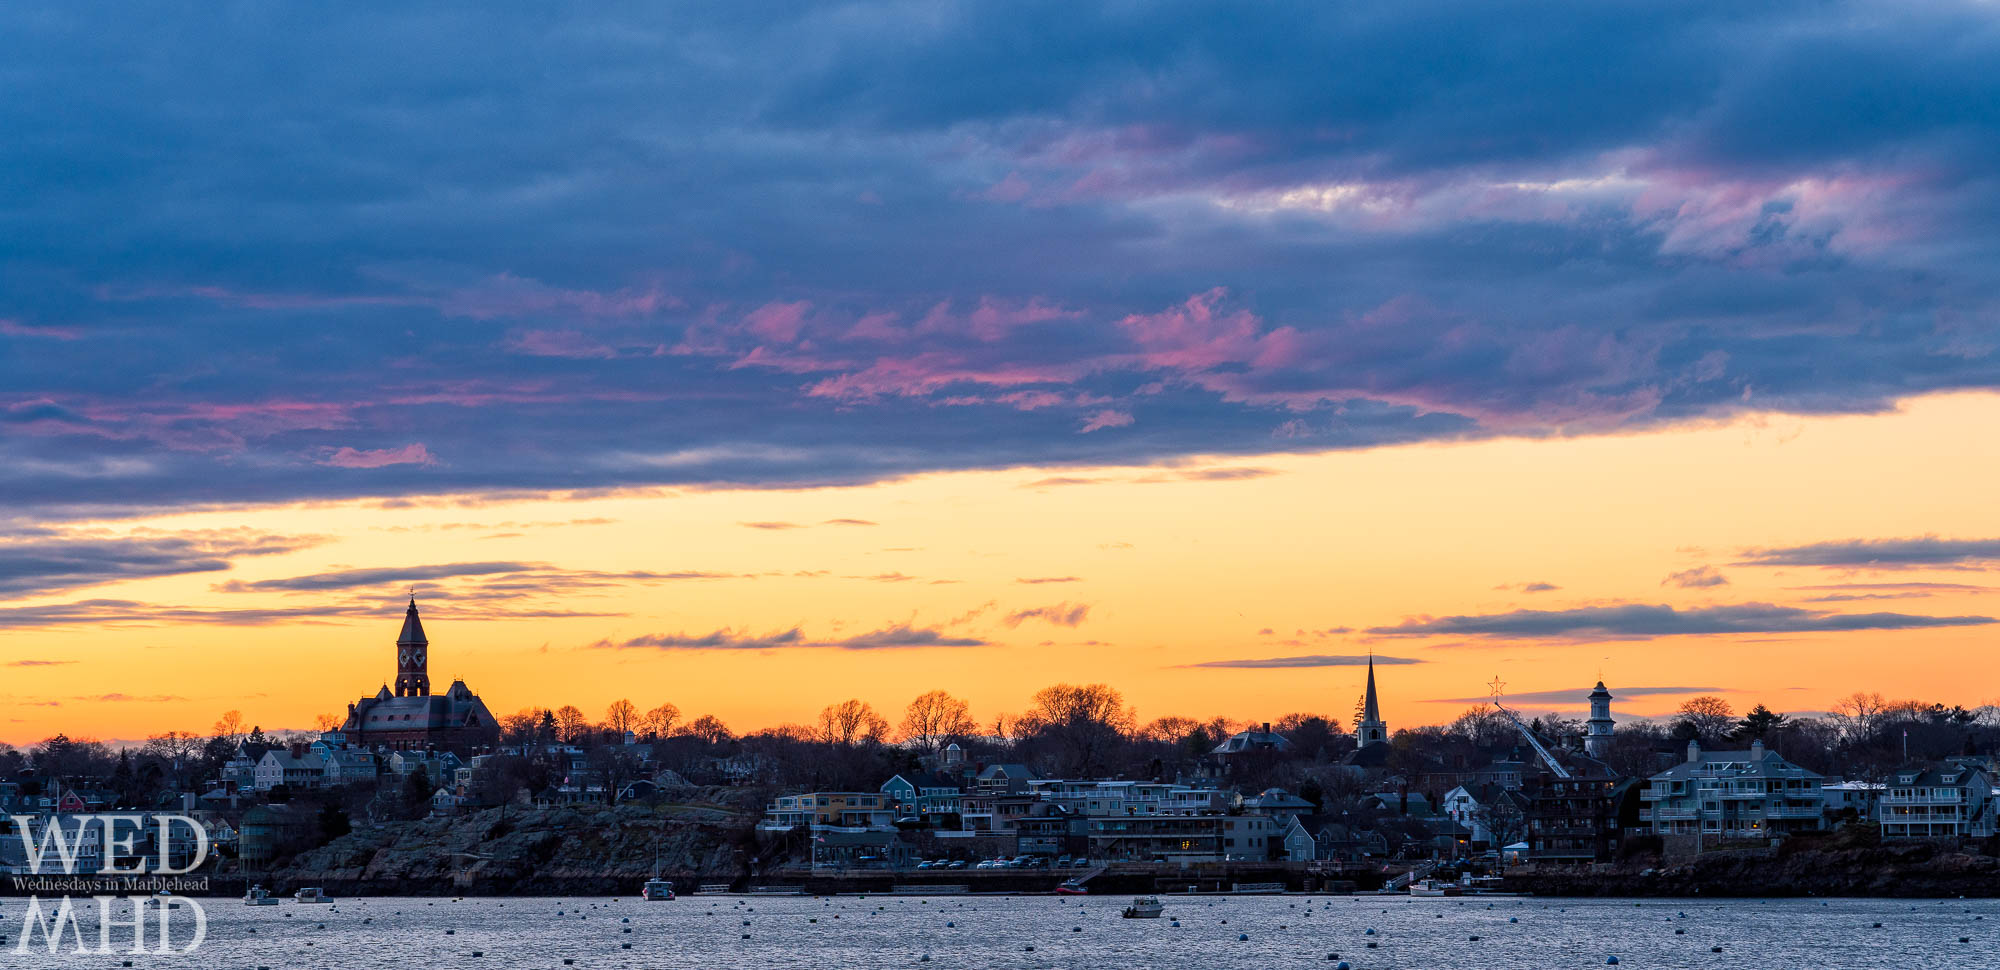 Marblehead's winter skyline features Abbot Hall, St Michael's steeple, the Grace Community Church and a star on the crane over State Street Landing